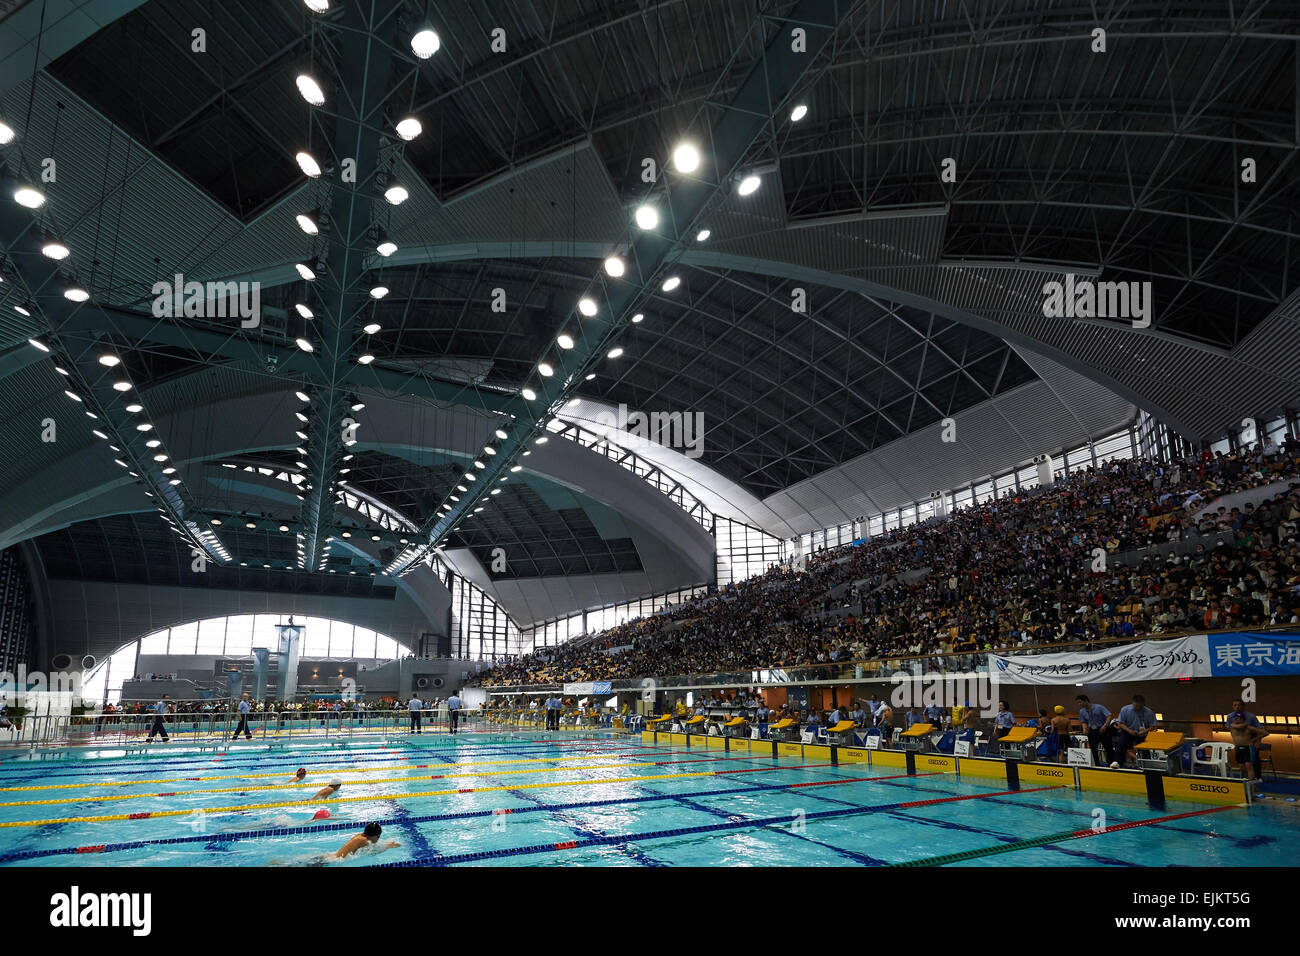 tatsumi international swimming pool tokyo japan 28th mar 2015 general view march 28 2015 swimming the 37th joc junior olympic cup at tatsumi - Olympic Swimming Pool 2015